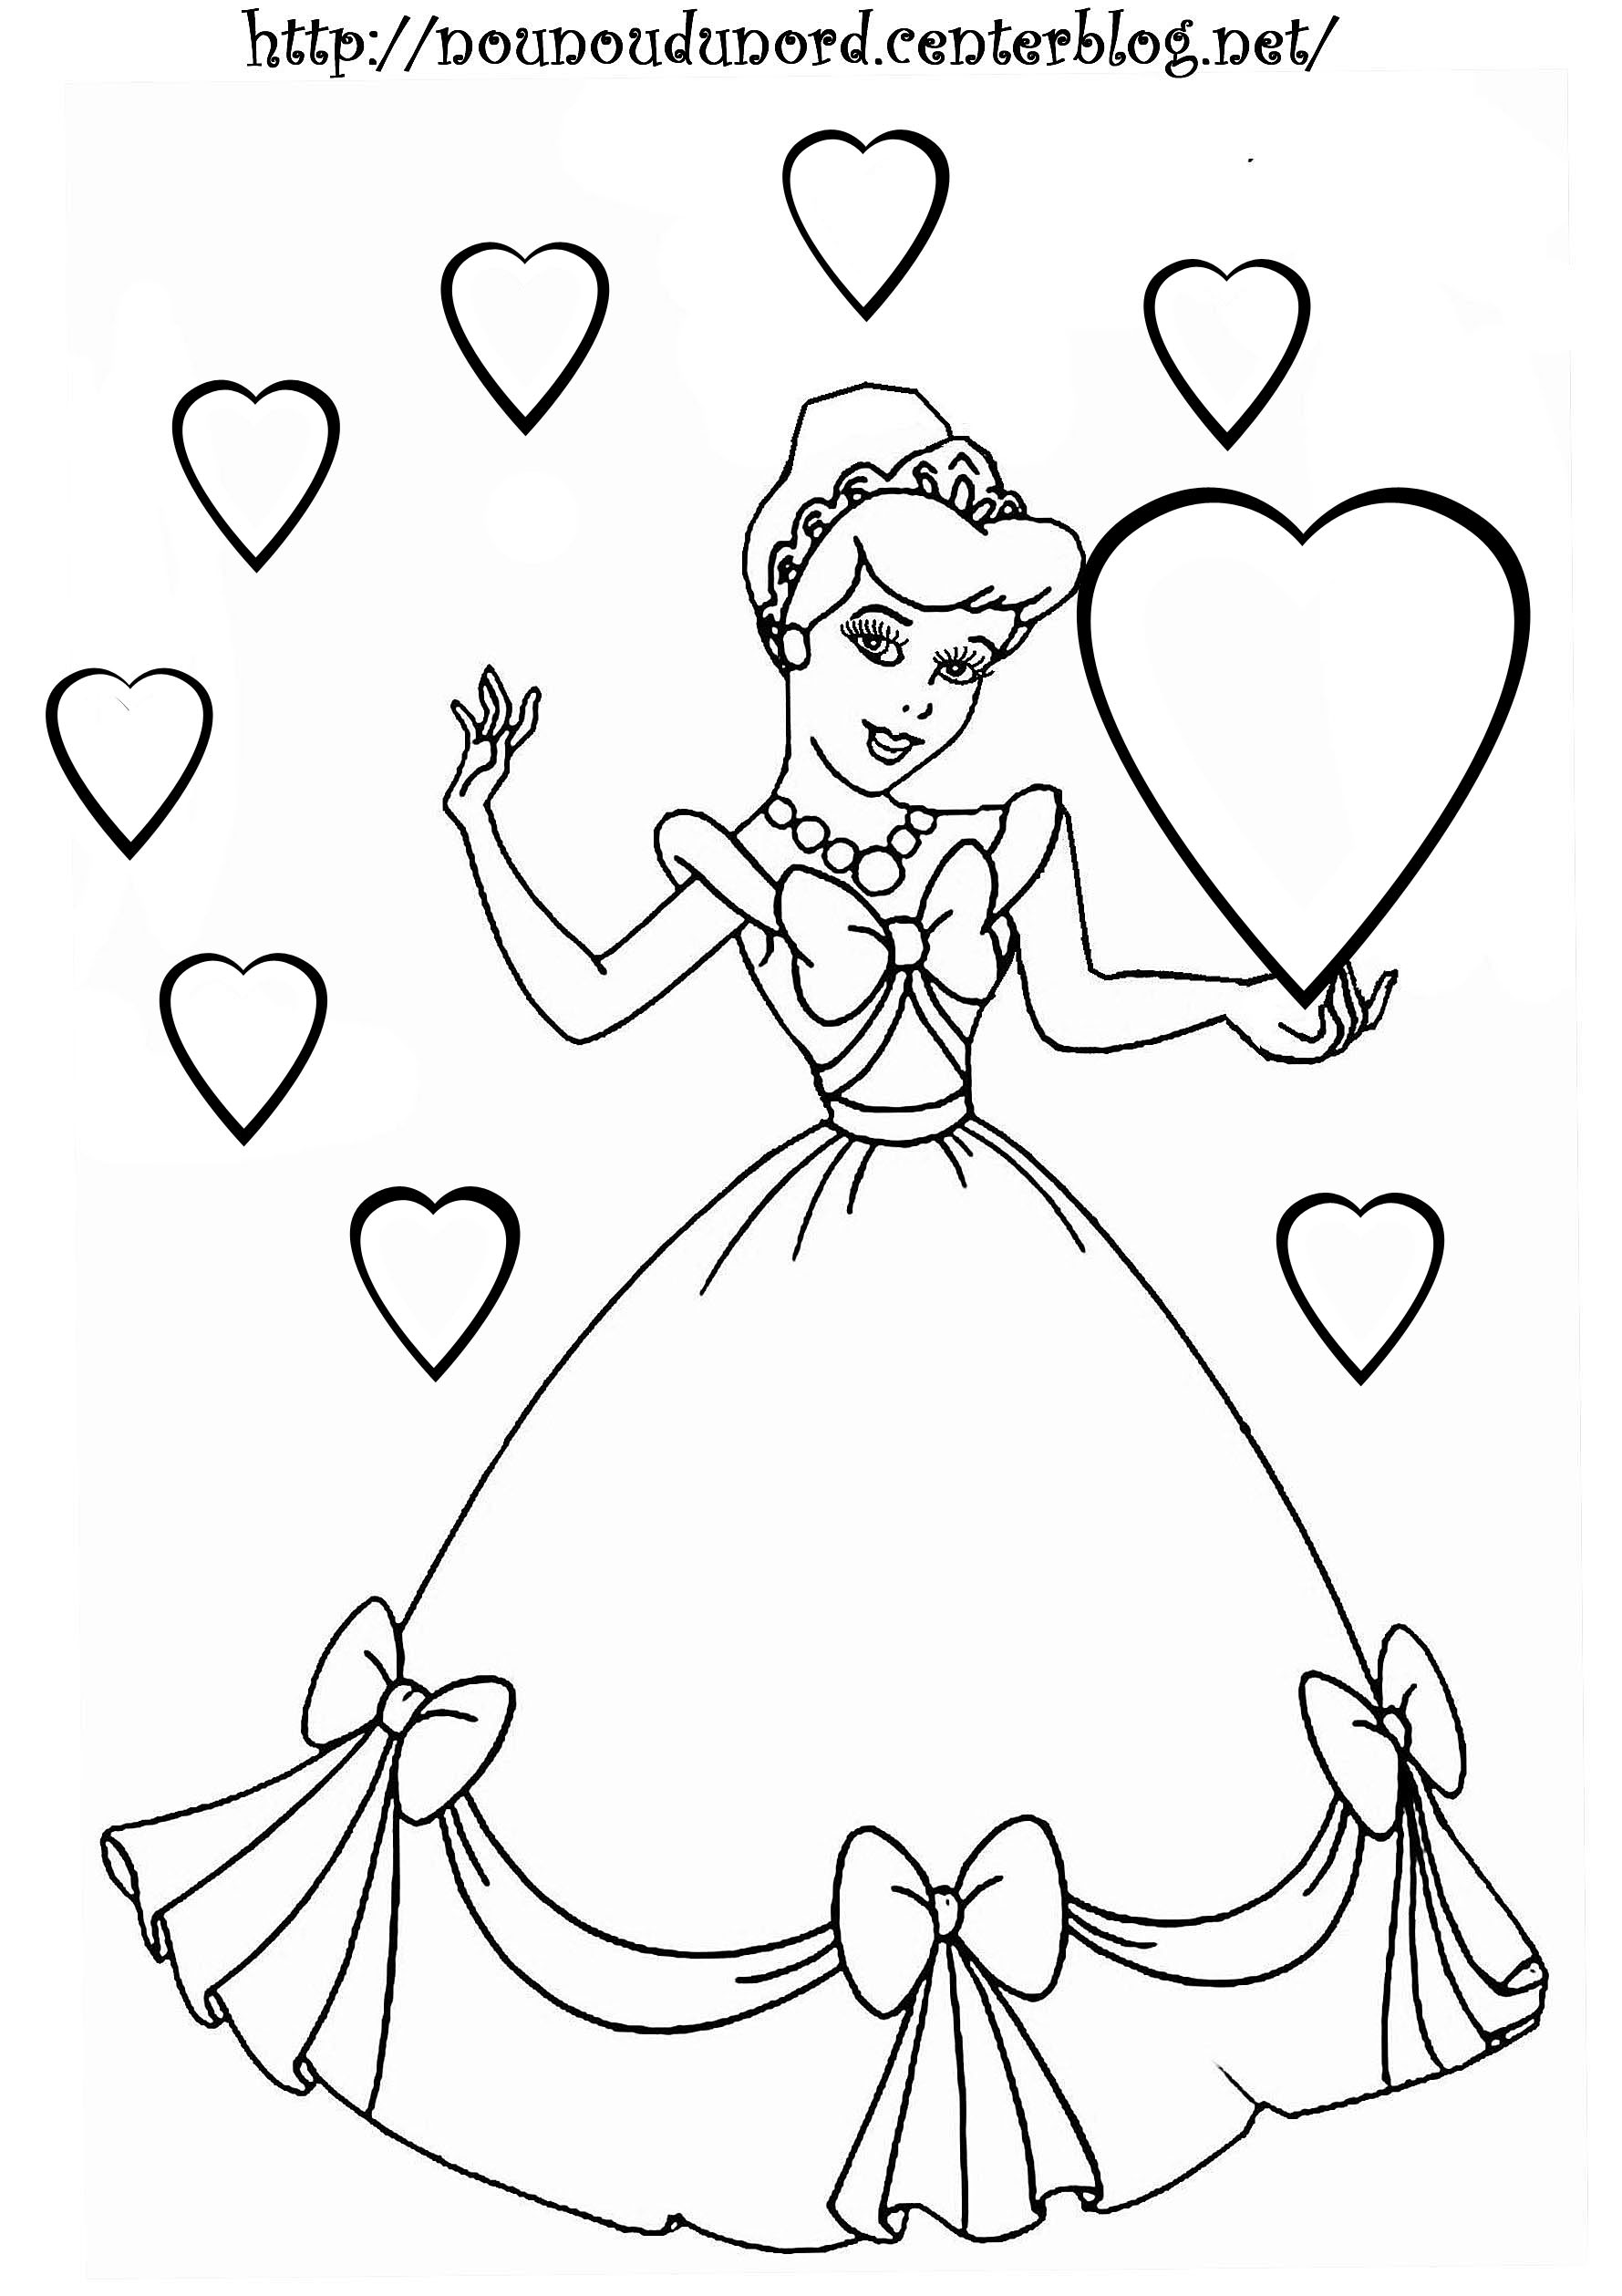 20 dessins de coloriage princesse disney en ligne imprimer. Black Bedroom Furniture Sets. Home Design Ideas